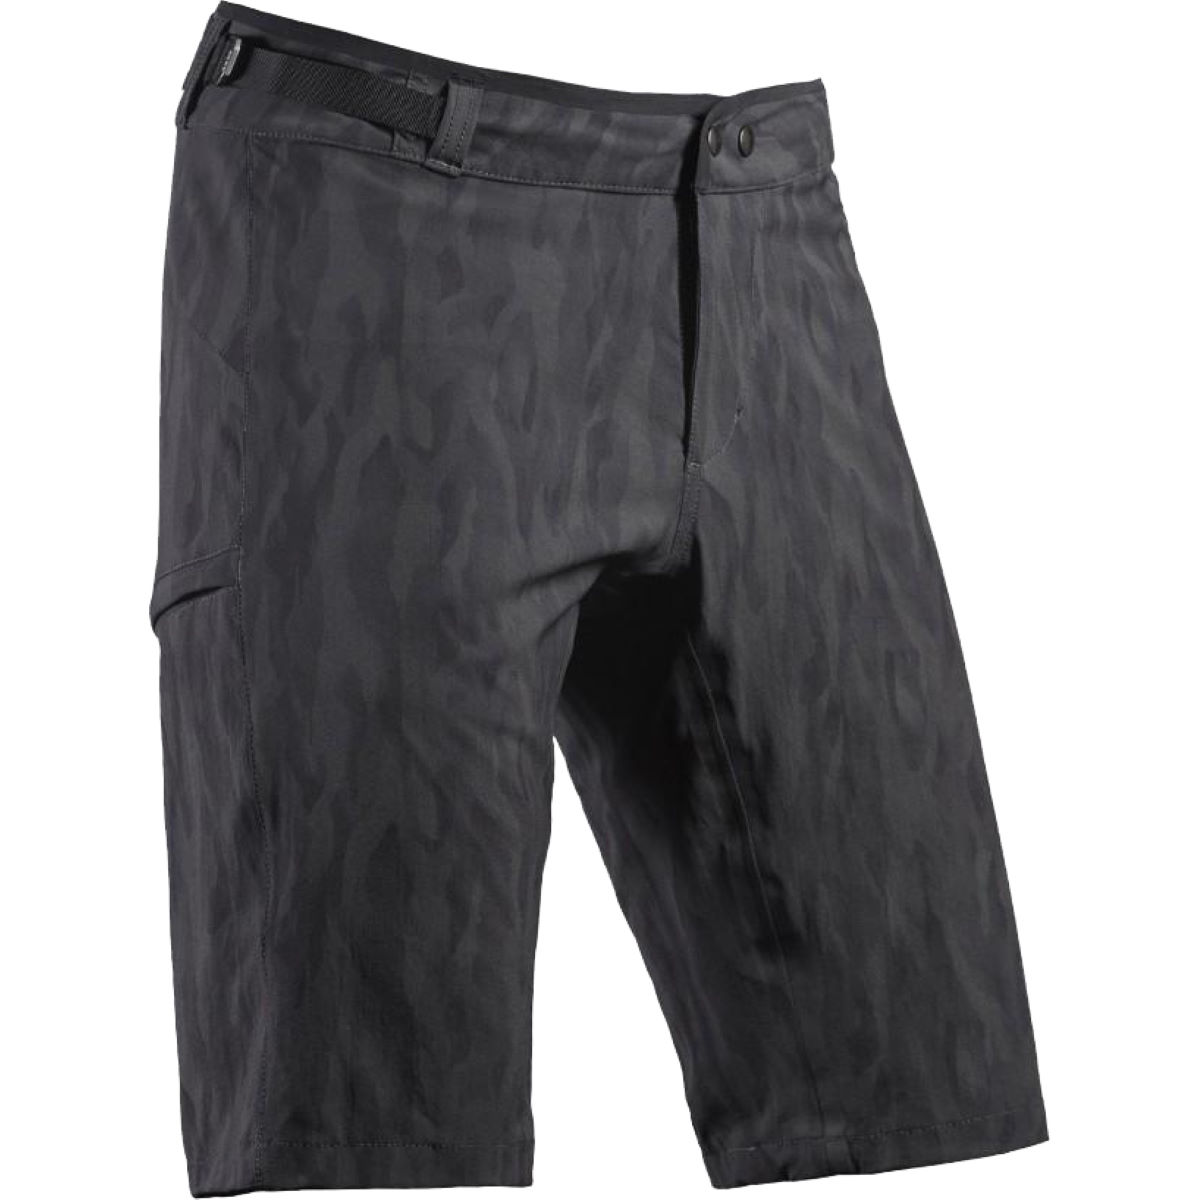 Short VTT Acre Supply The Traverse XC - 31 Sutro Camo  Shorts amples